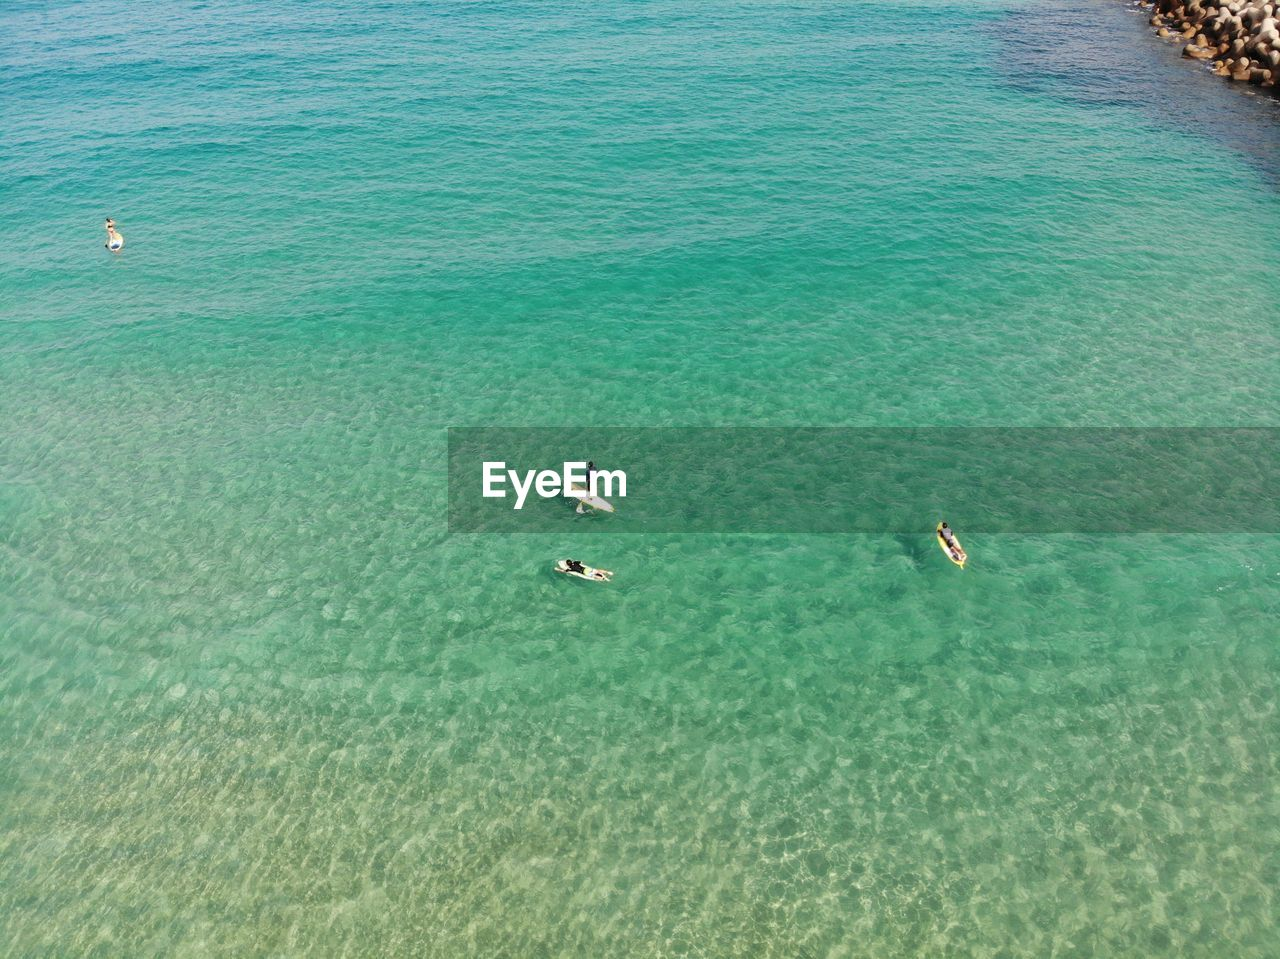 water, sea, waterfront, beauty in nature, scenics - nature, high angle view, day, nature, turquoise colored, tranquility, swimming, tranquil scene, blue, outdoors, nautical vessel, animal, animals in the wild, vertebrate, animal themes